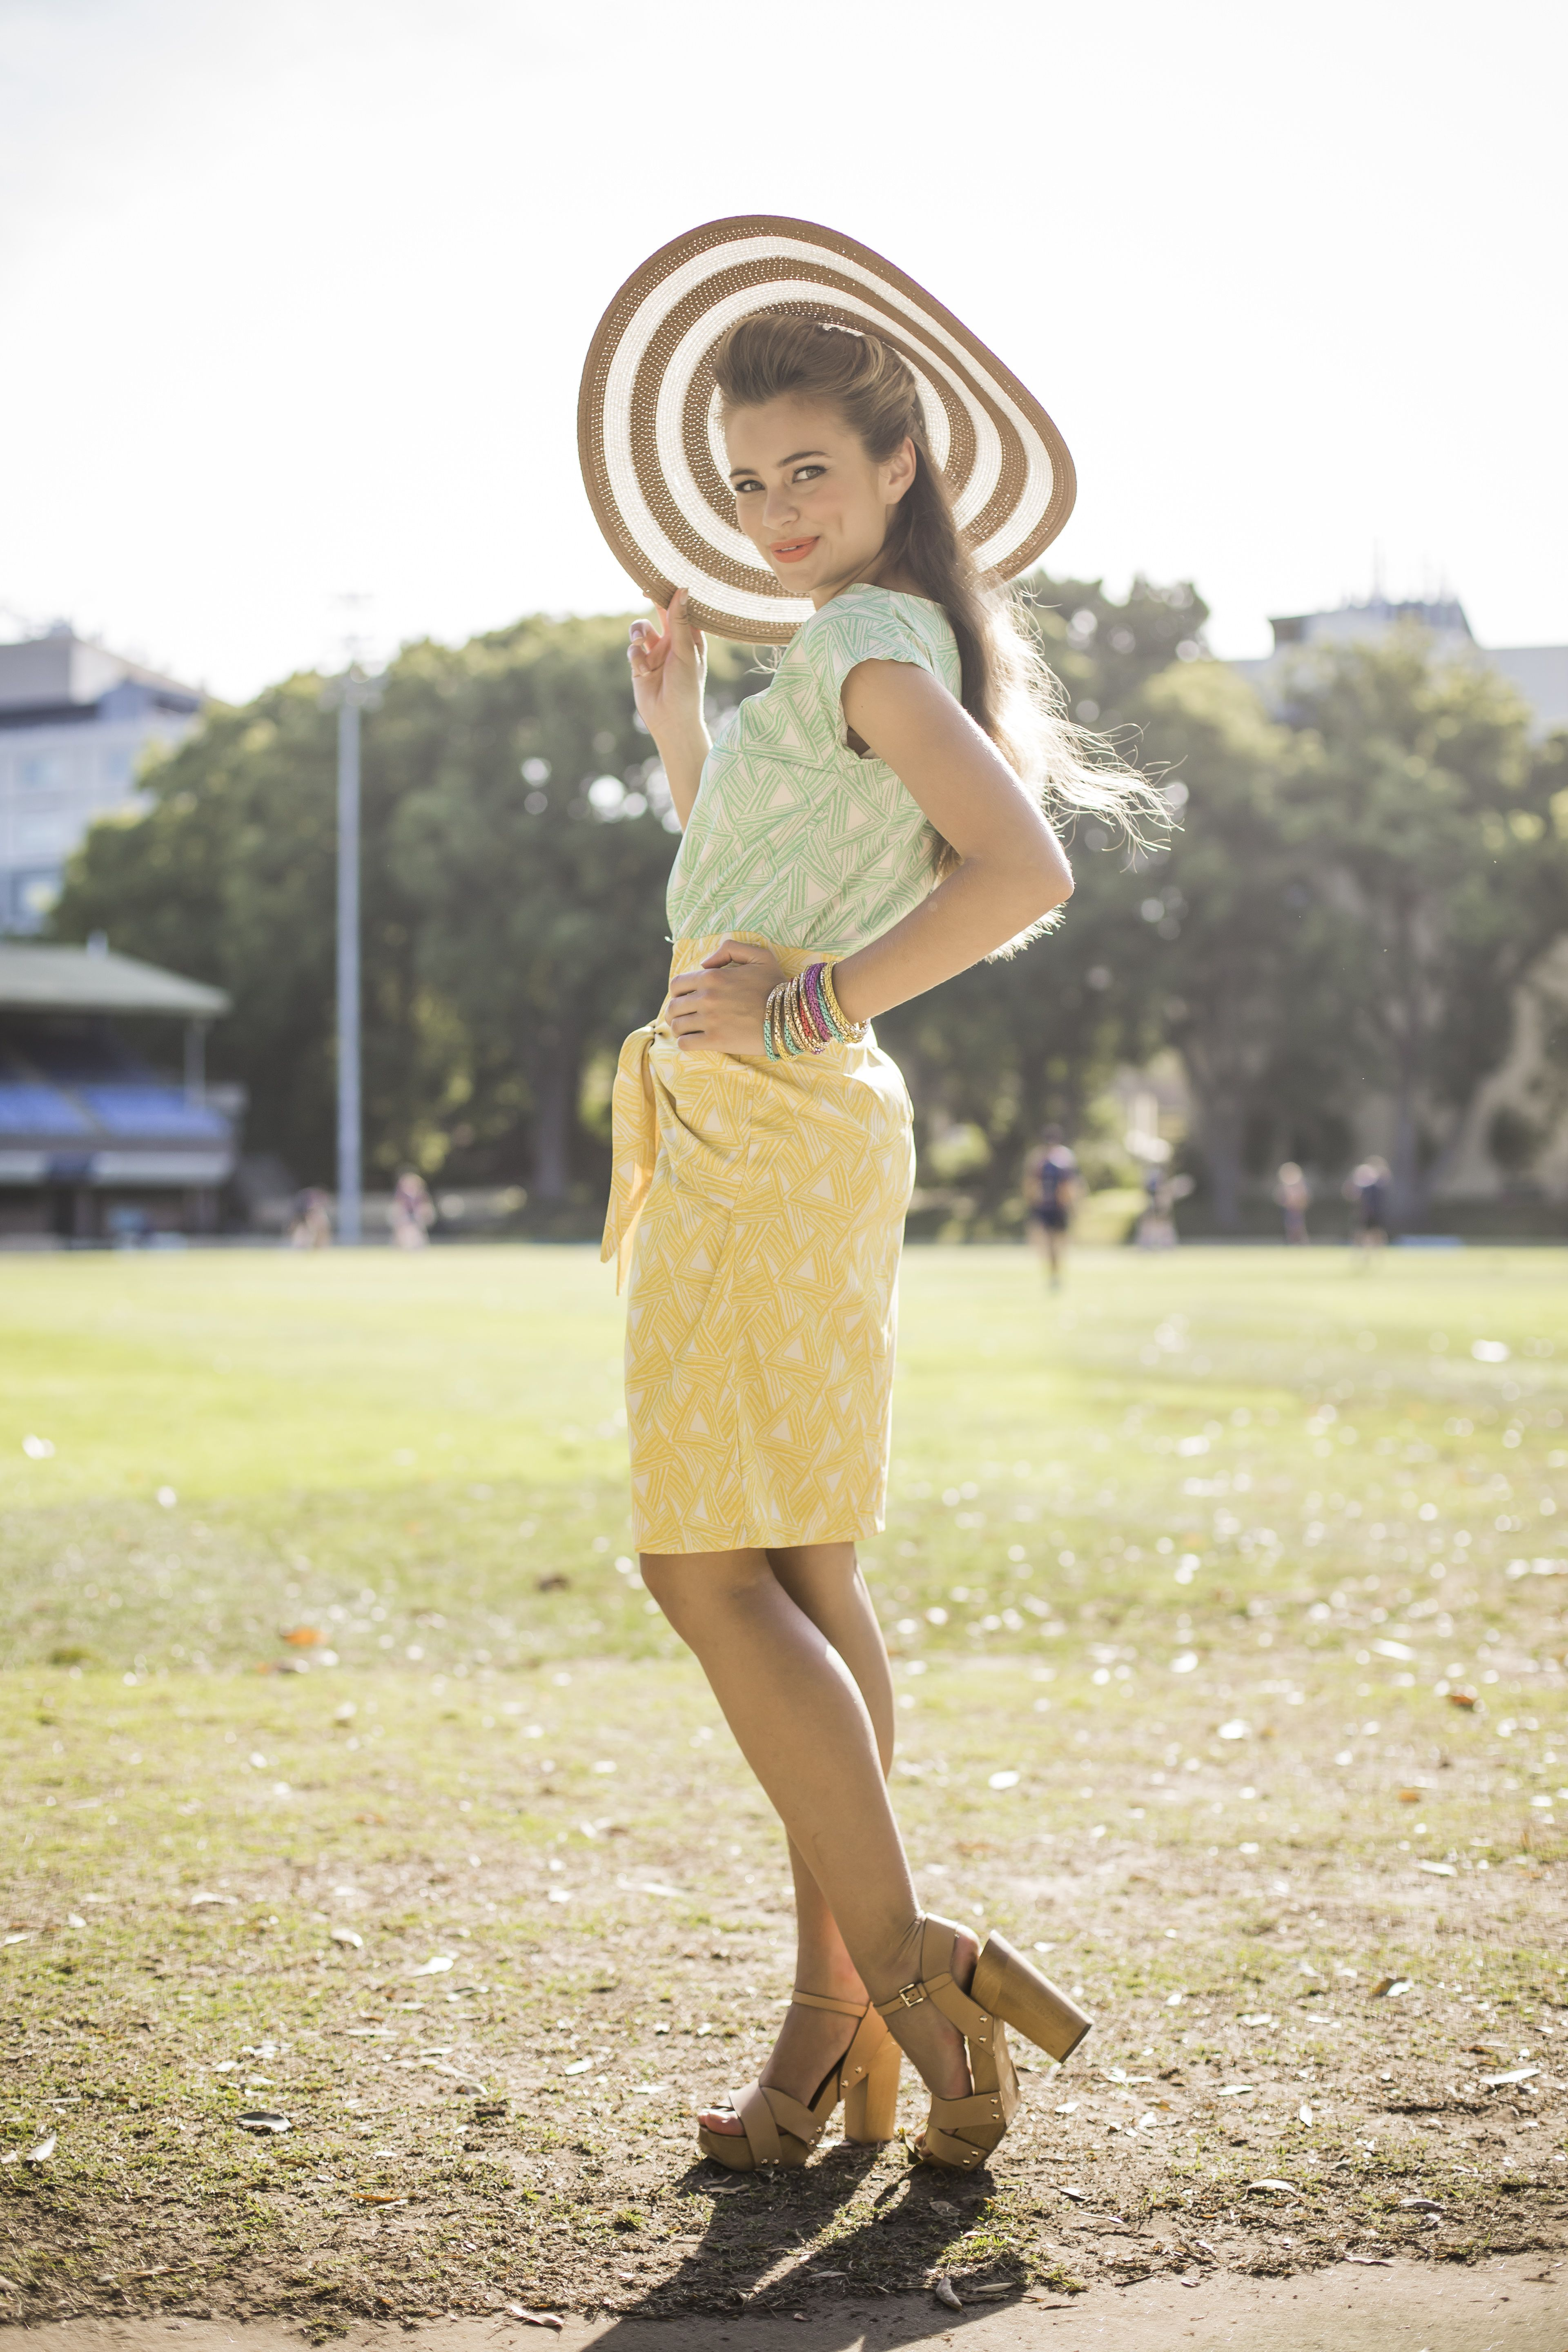 Downtown Sydney Dress | Sydney City Collection by Shabby Apple